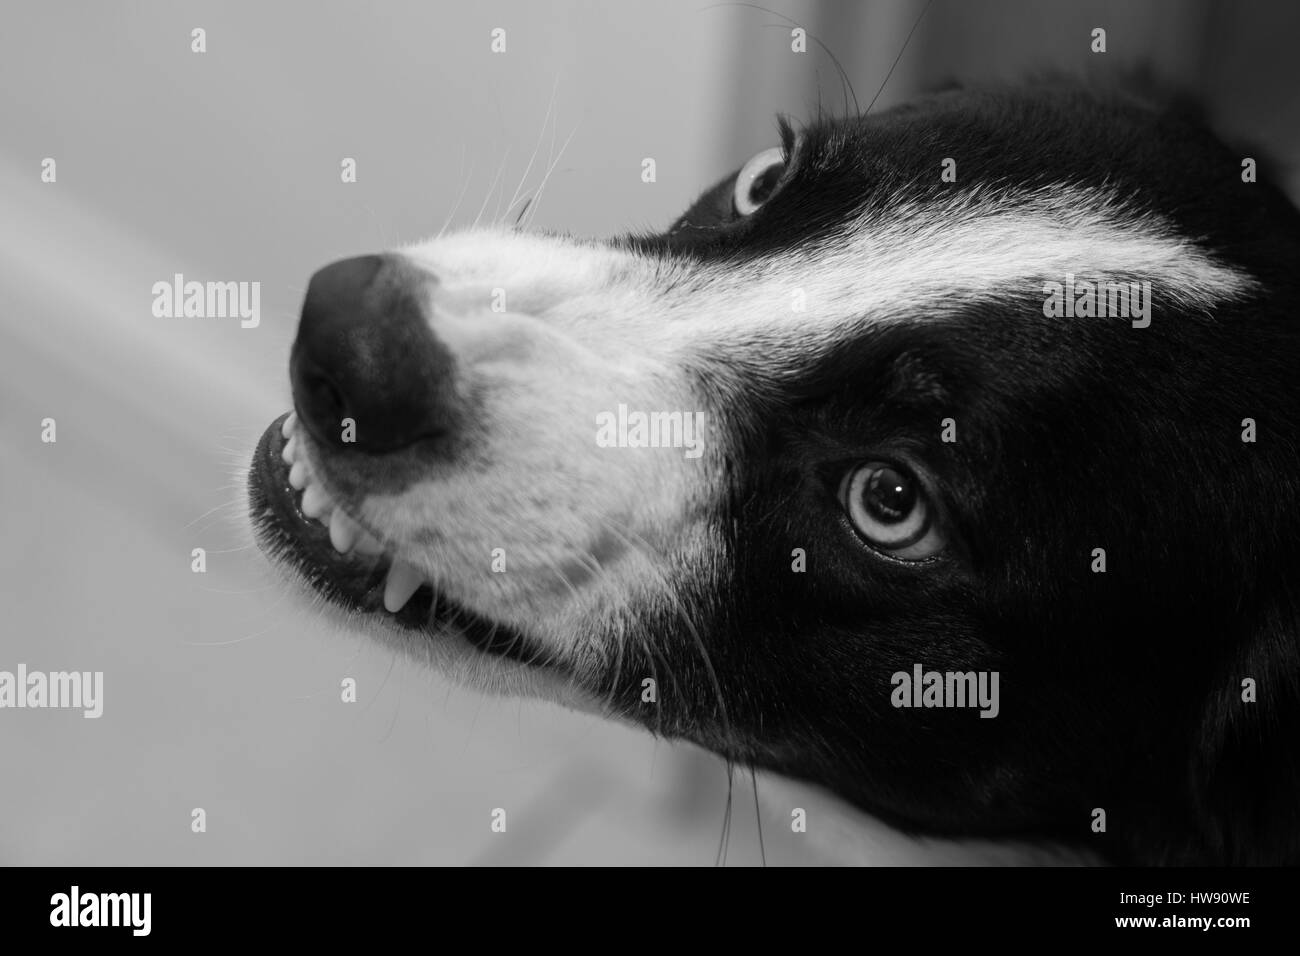 Angry Border Collie Dog, Growling and Showing Teeth - Stock Image